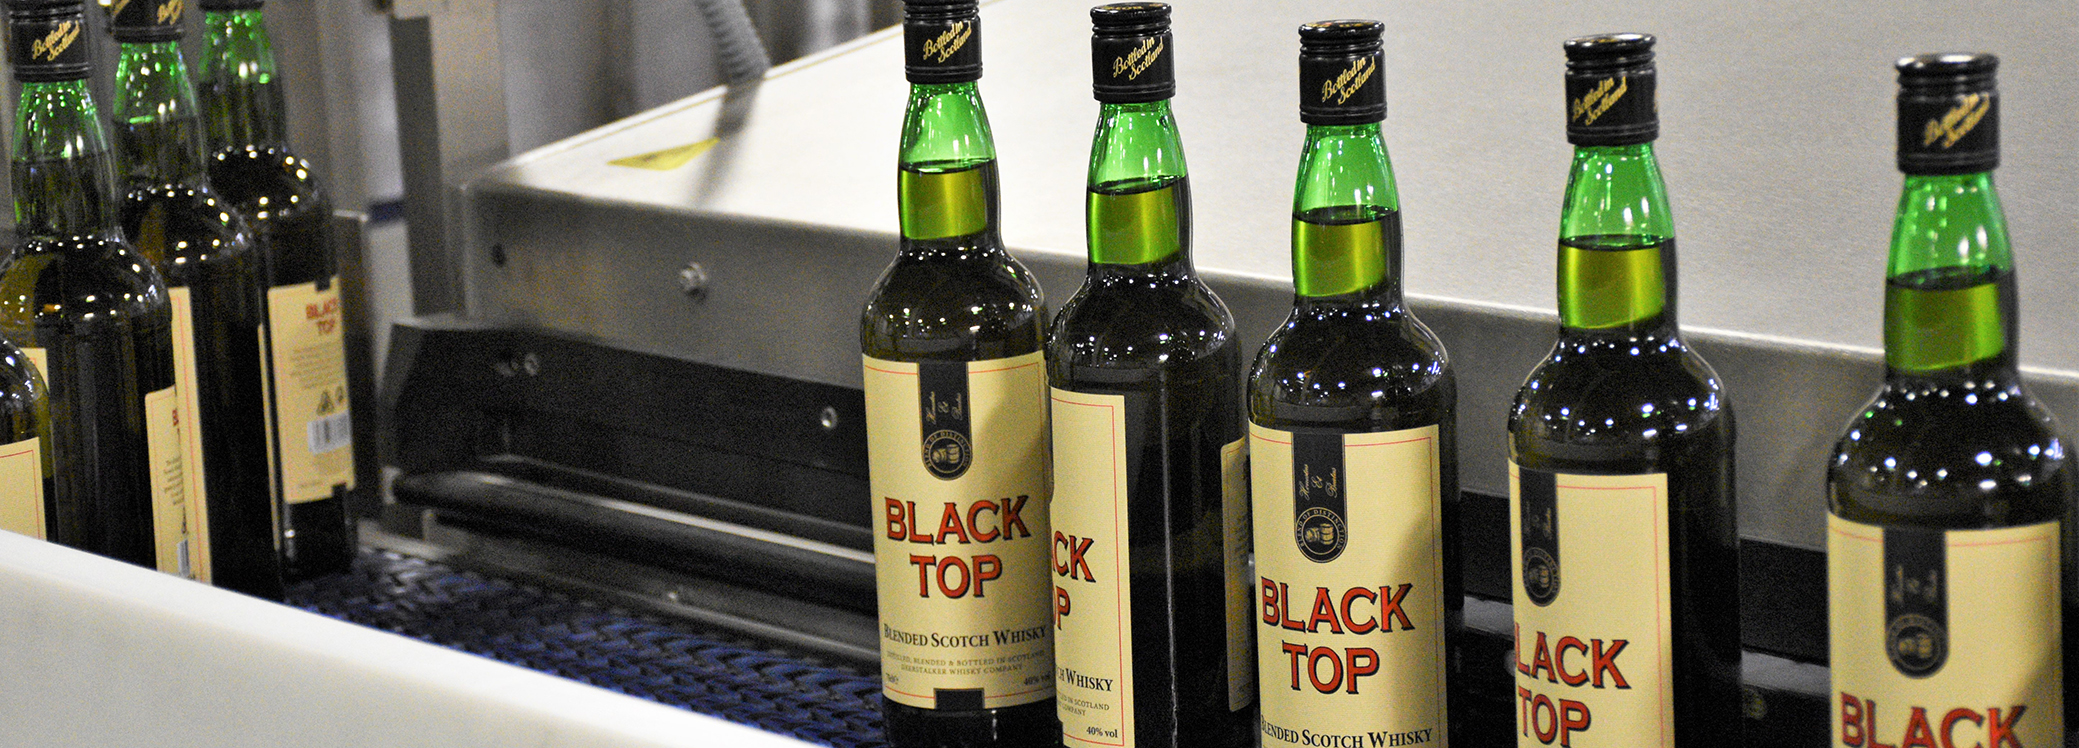 Black Top Blended Scotch Whisky bottles on production line